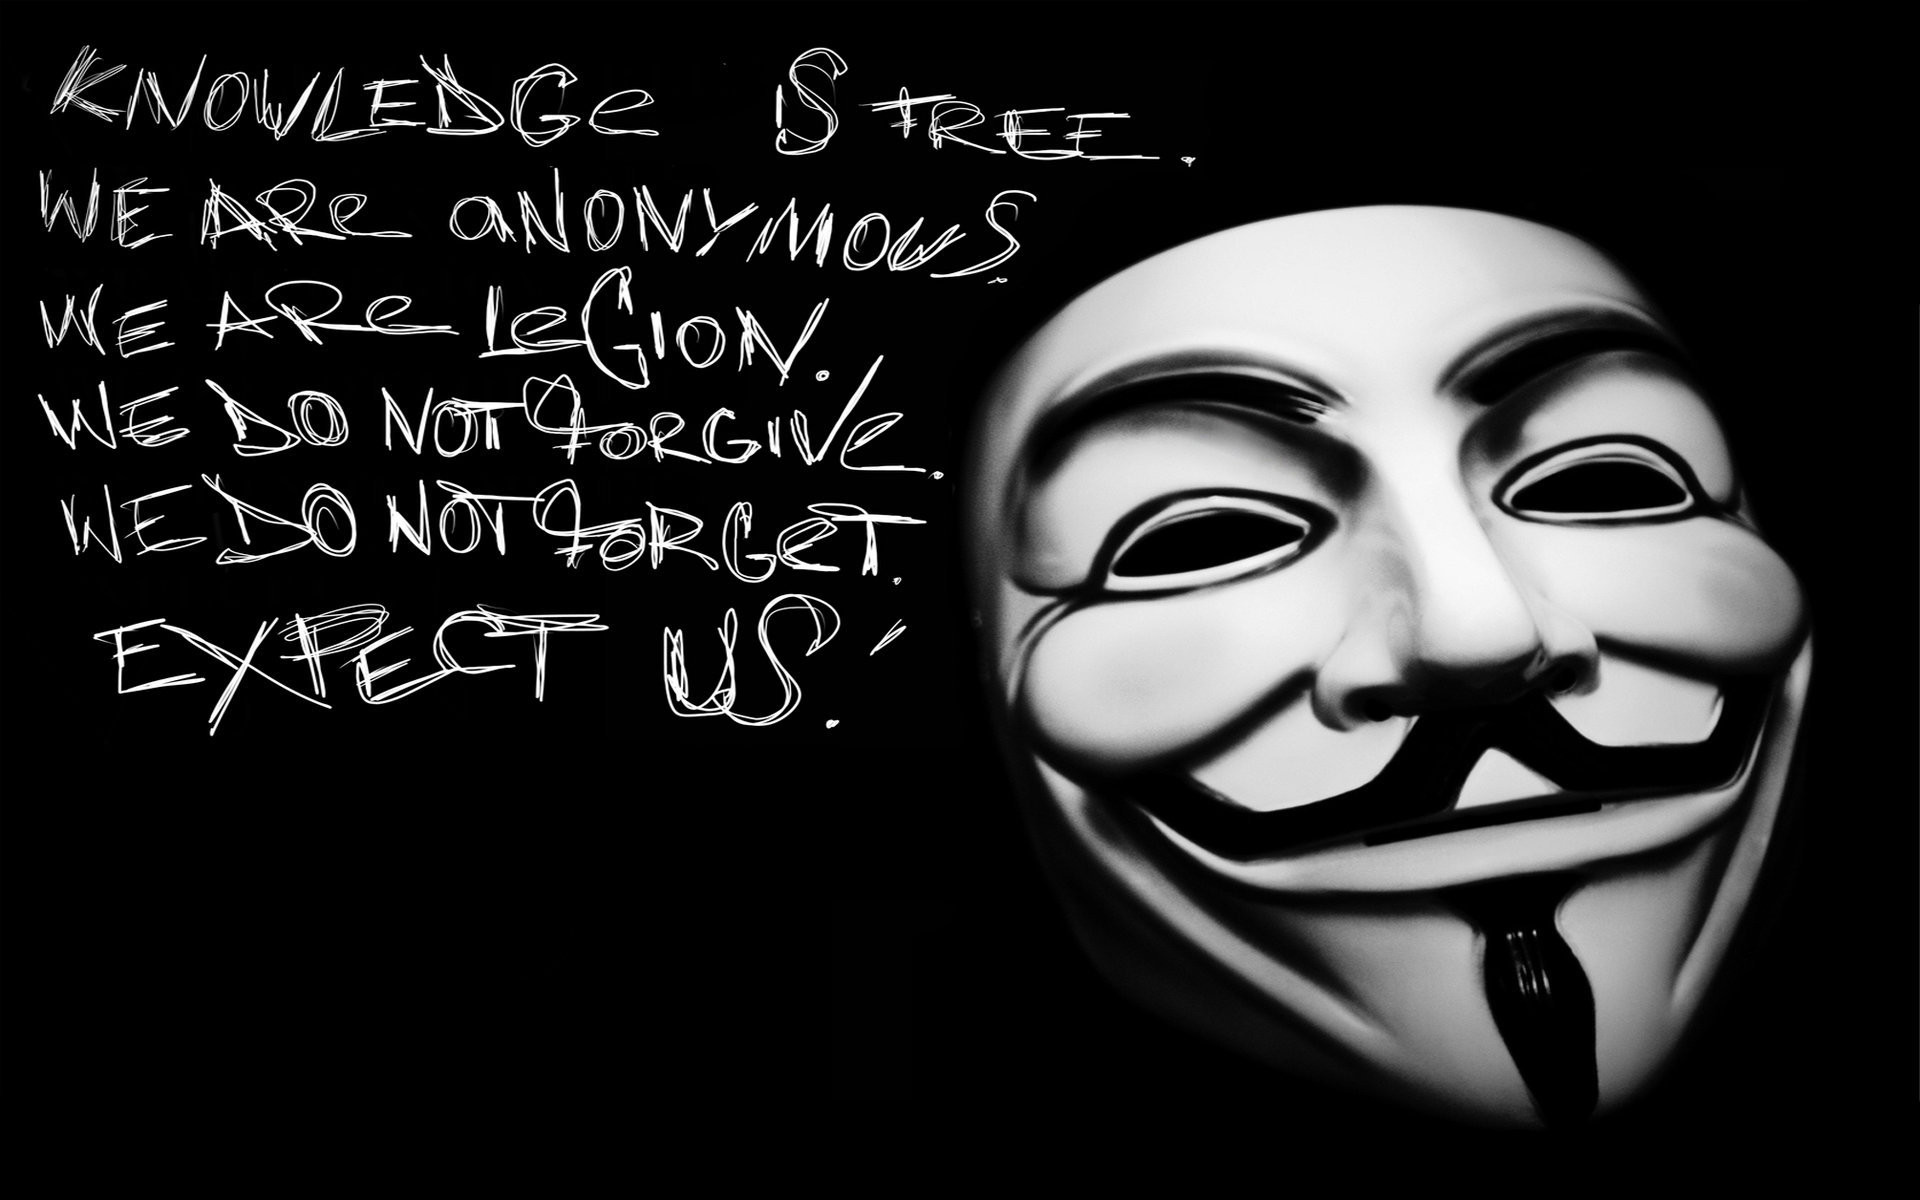 Anonymous hd wallpapers 79 images - Anonymous wallpaper full hd ...